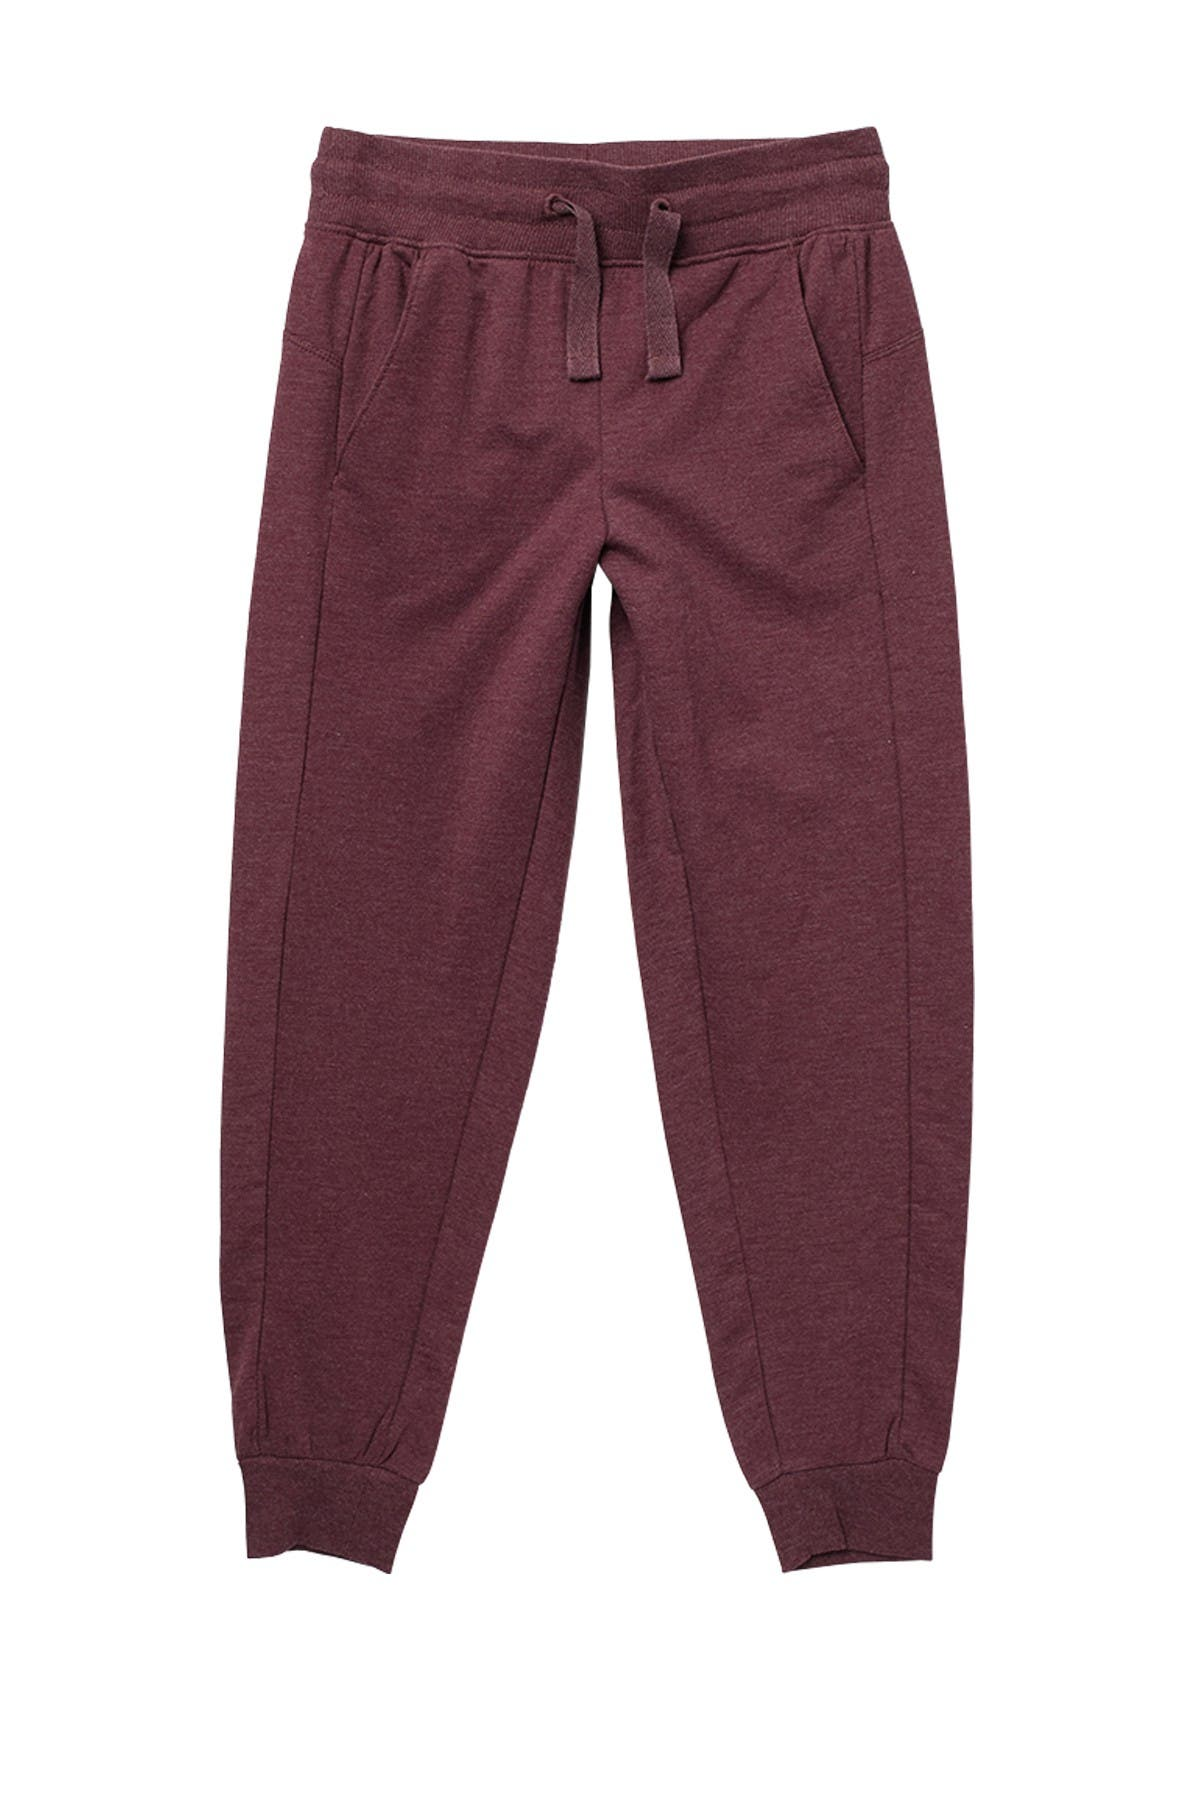 Image of Z by Zella Girl Replay Slim Jogger Pants